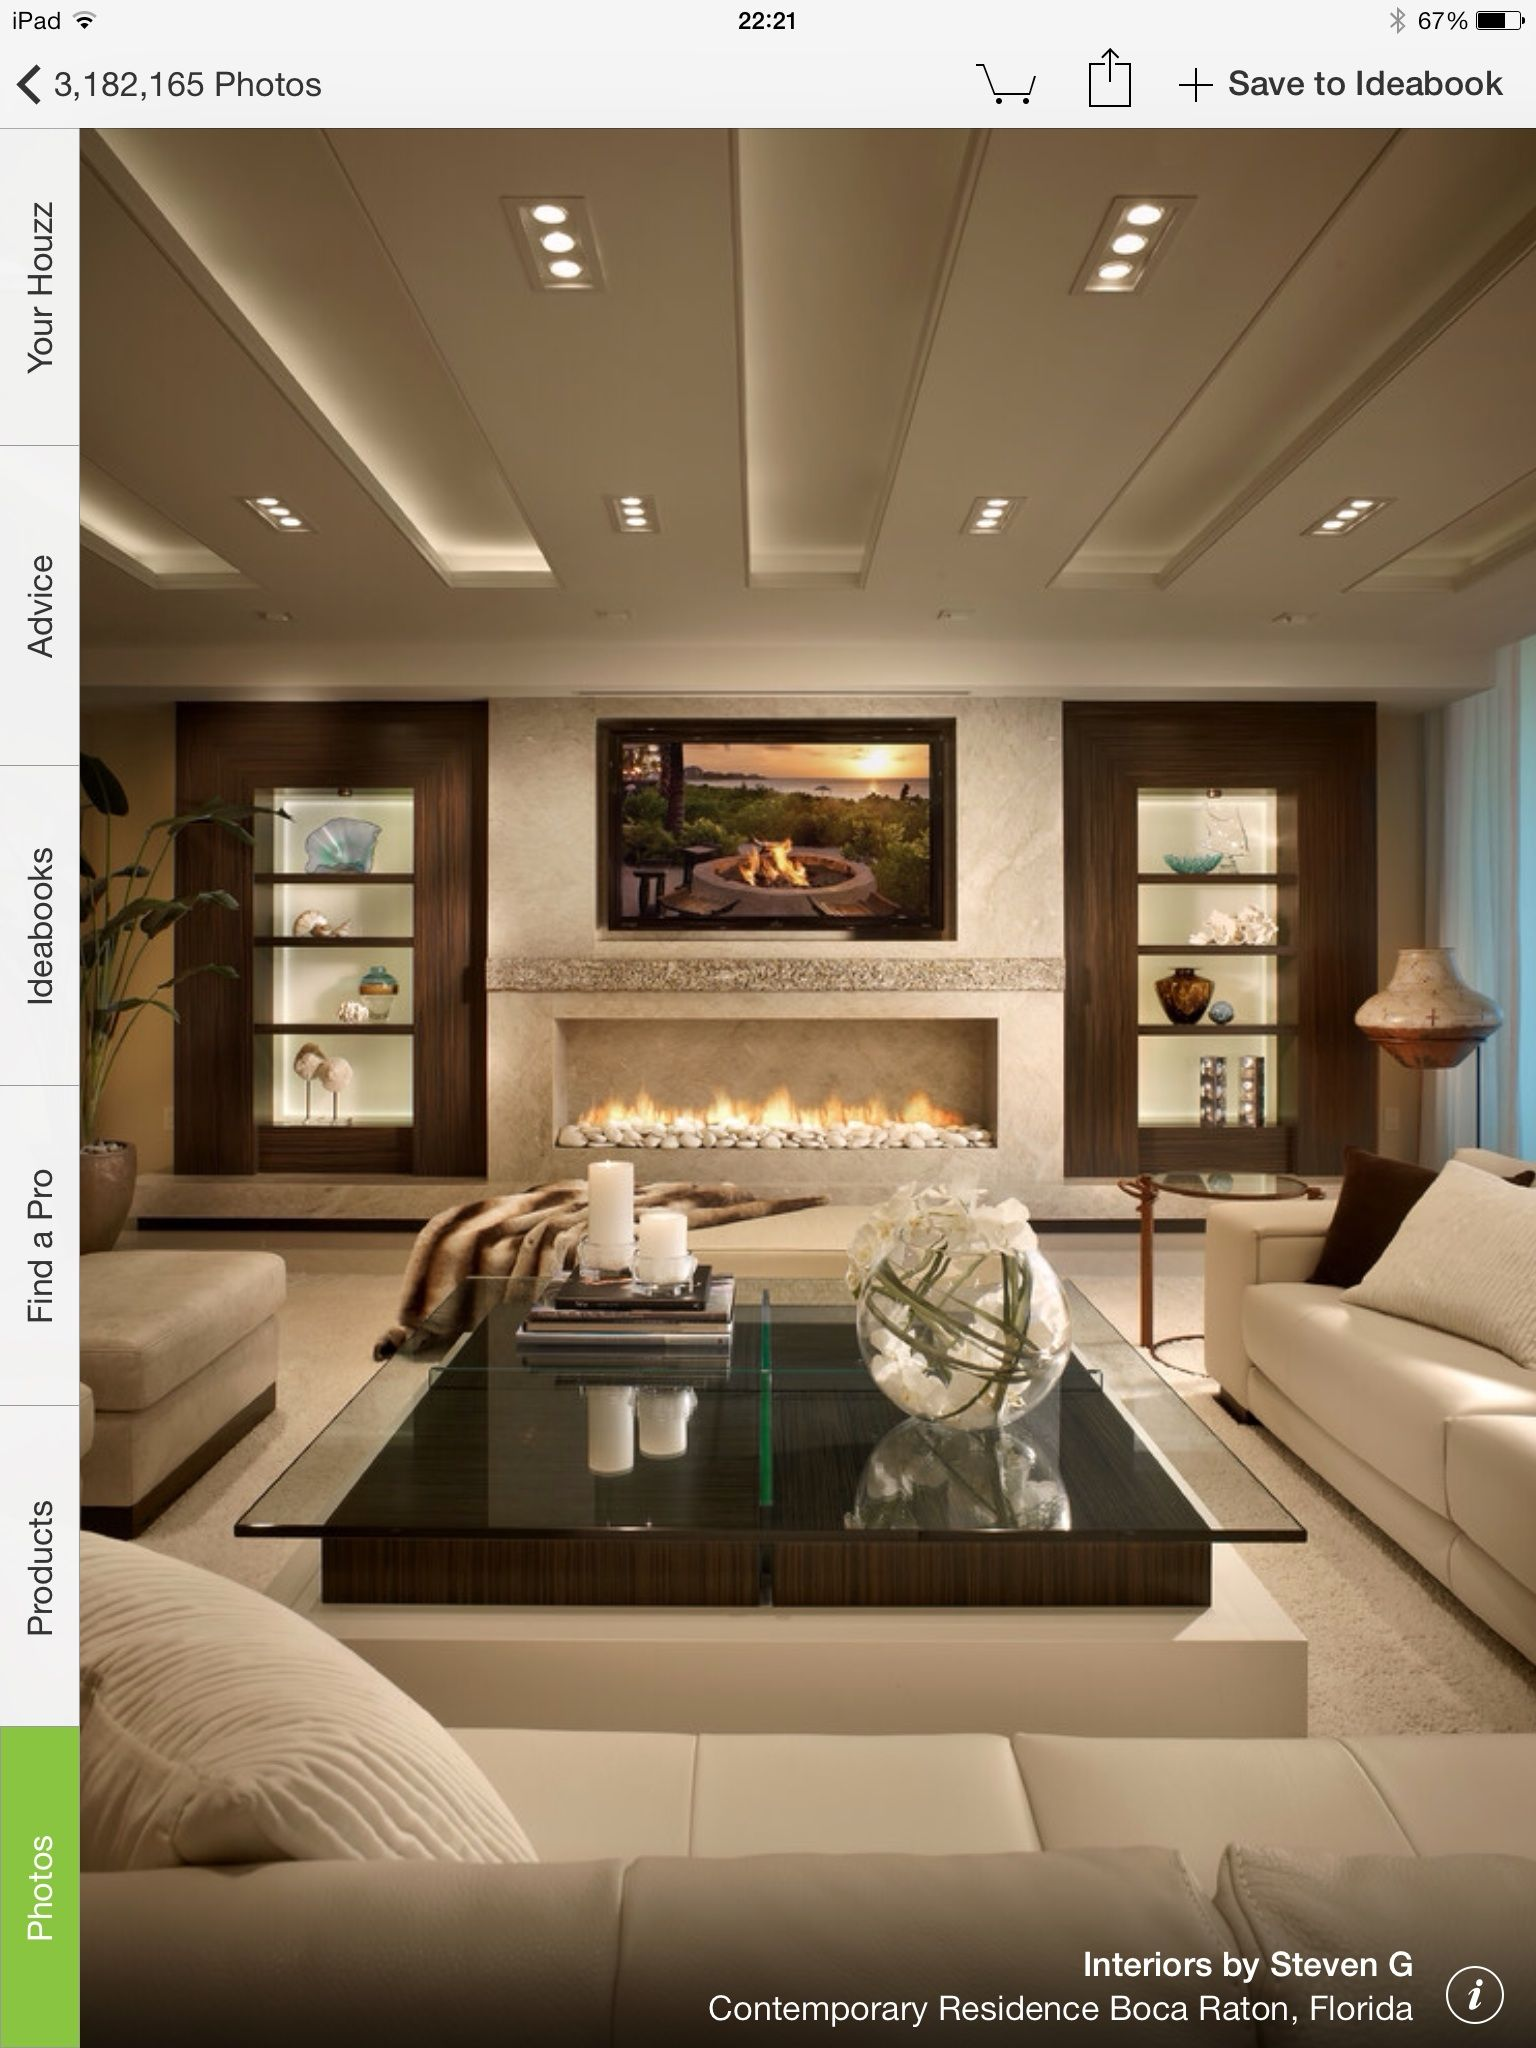 Stevenphan s ideas an ideabook by stevenphan - 23 Stunning Modern Living Room Design Ideas Now This Is A Family Room Or Basement